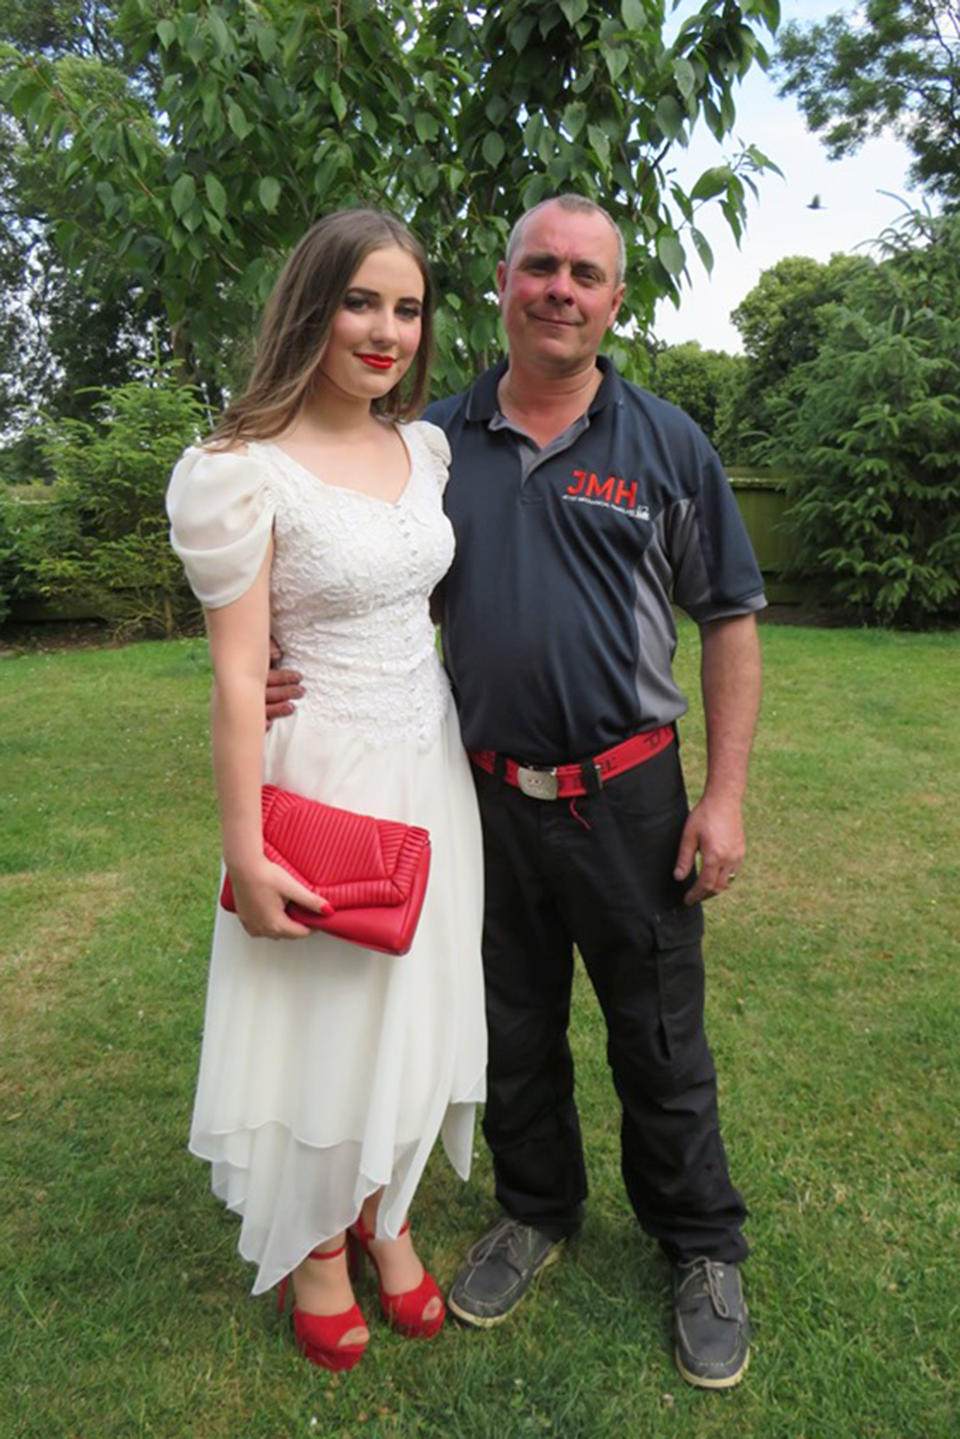 Grace photographer with her father, David, on the day of prom [Photo: Caters]